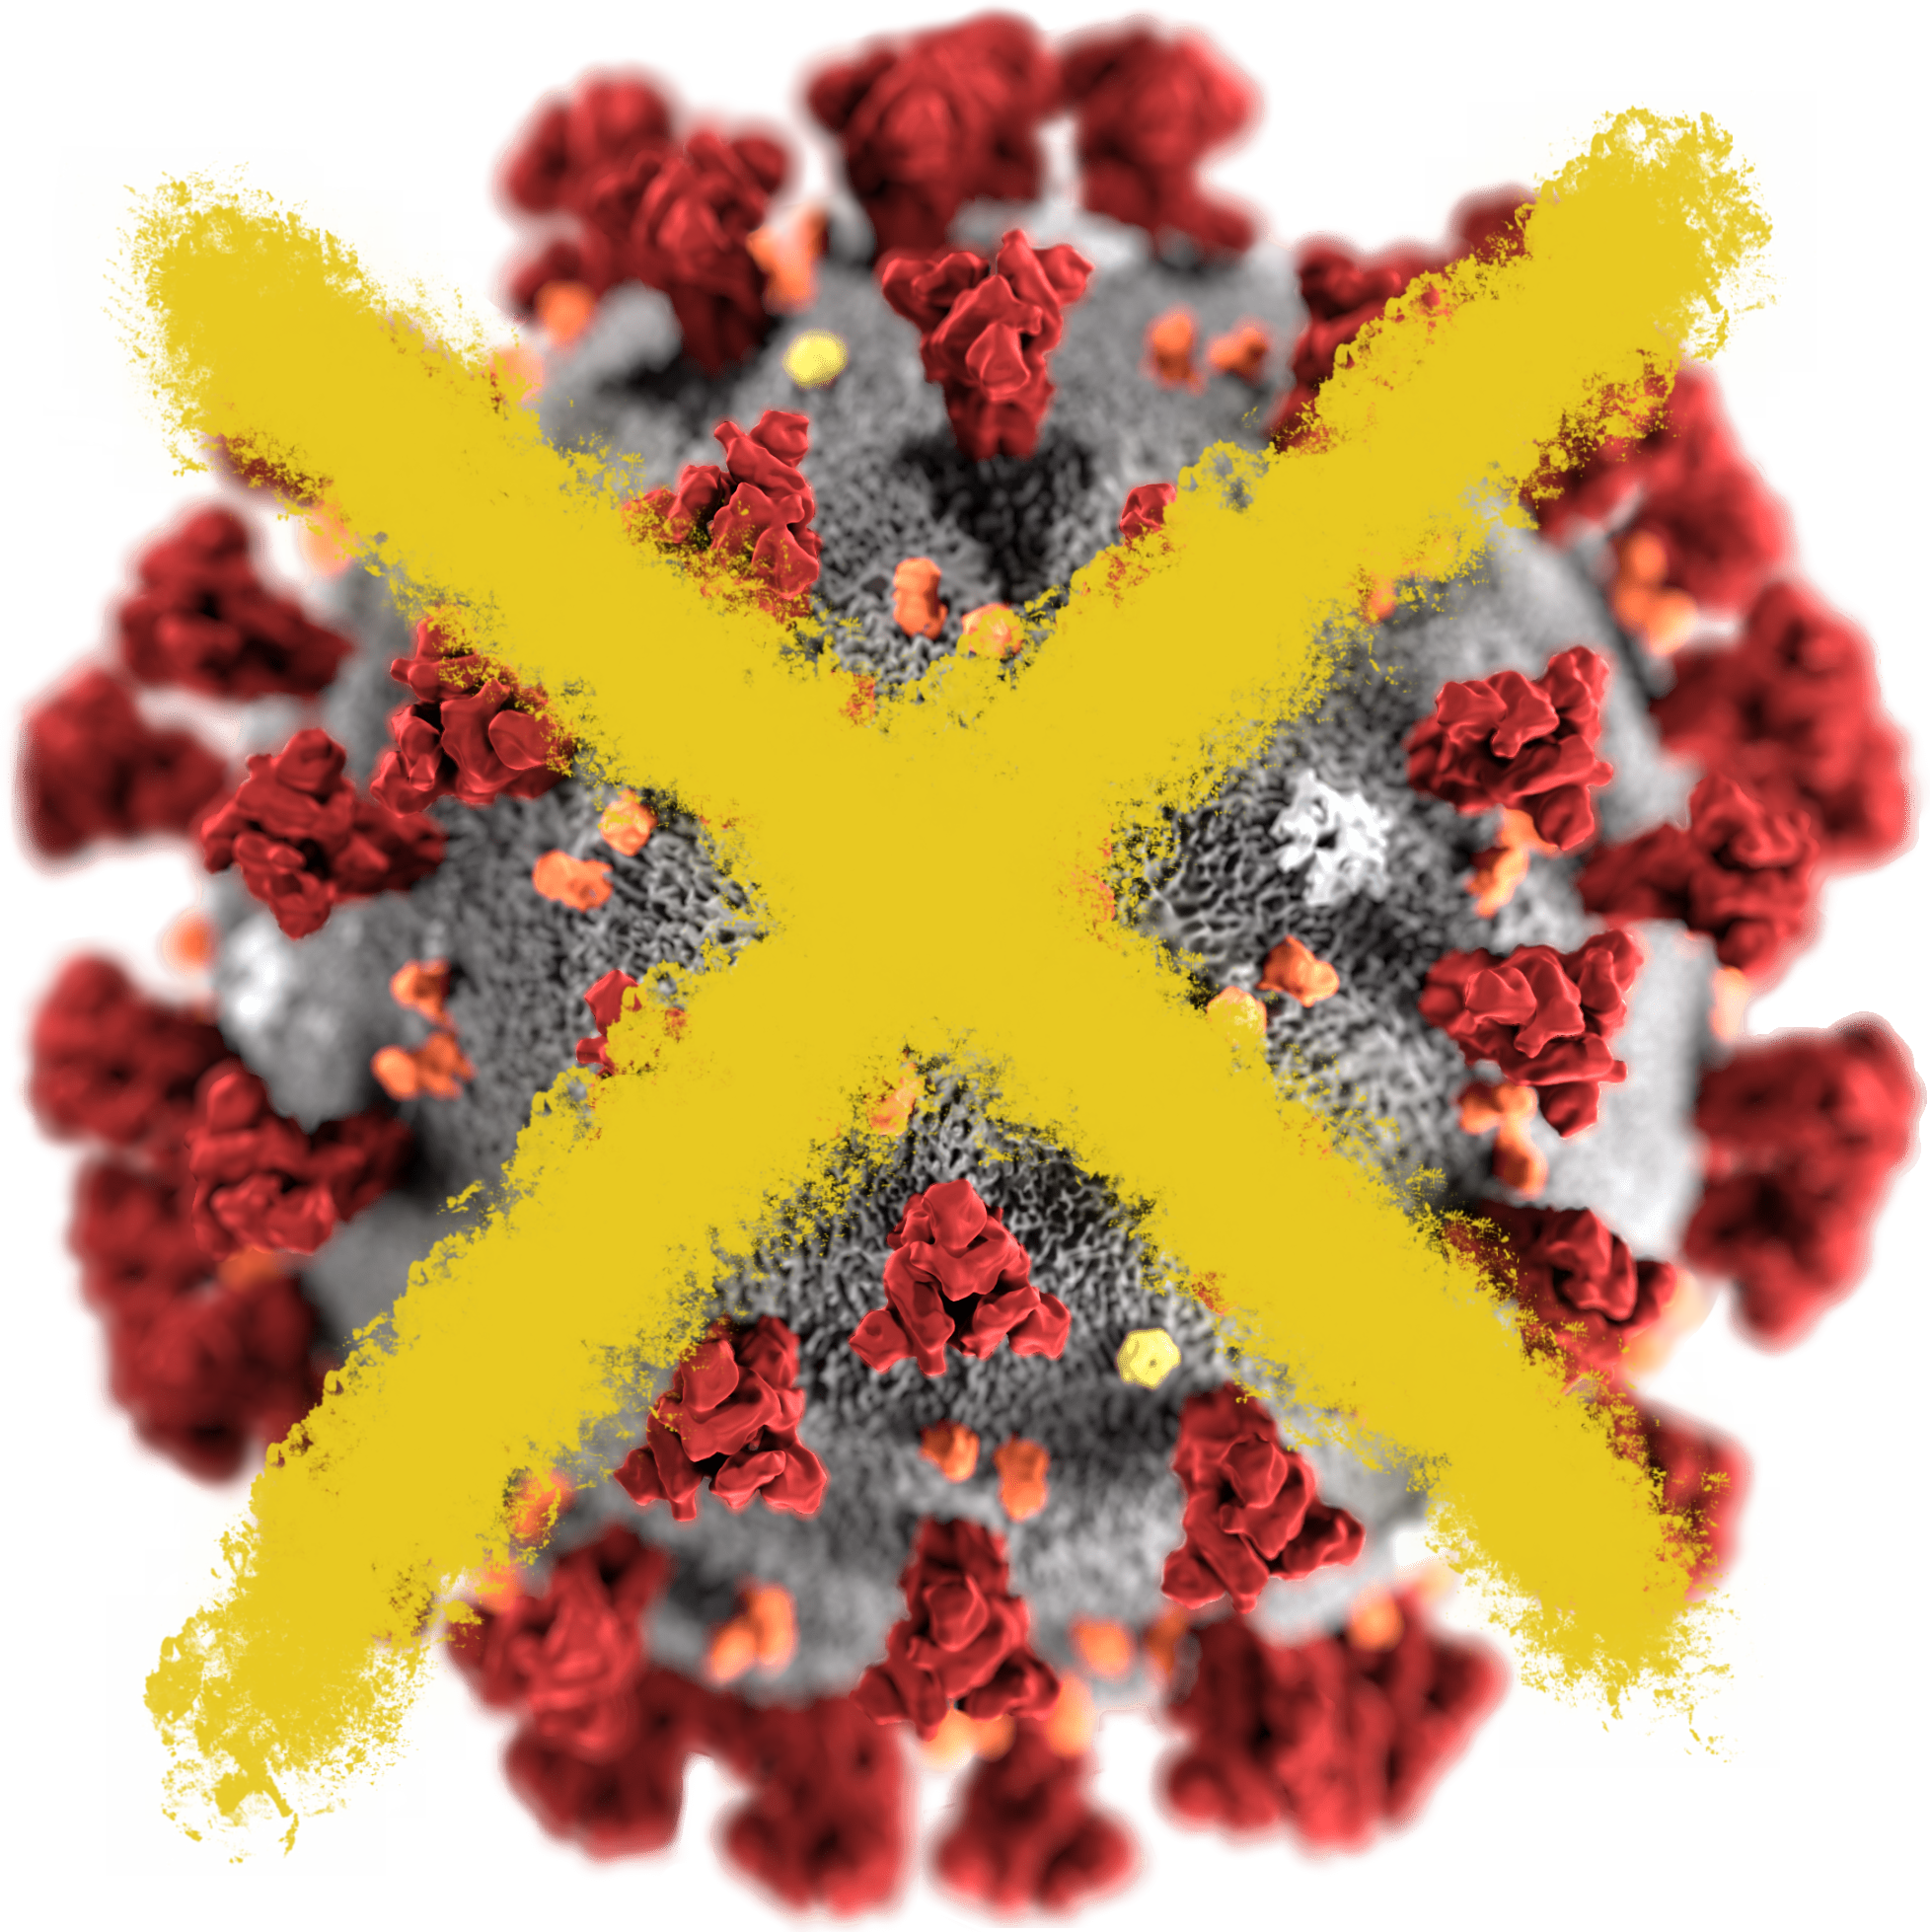 SARS-CoV-2_without_background-crossed